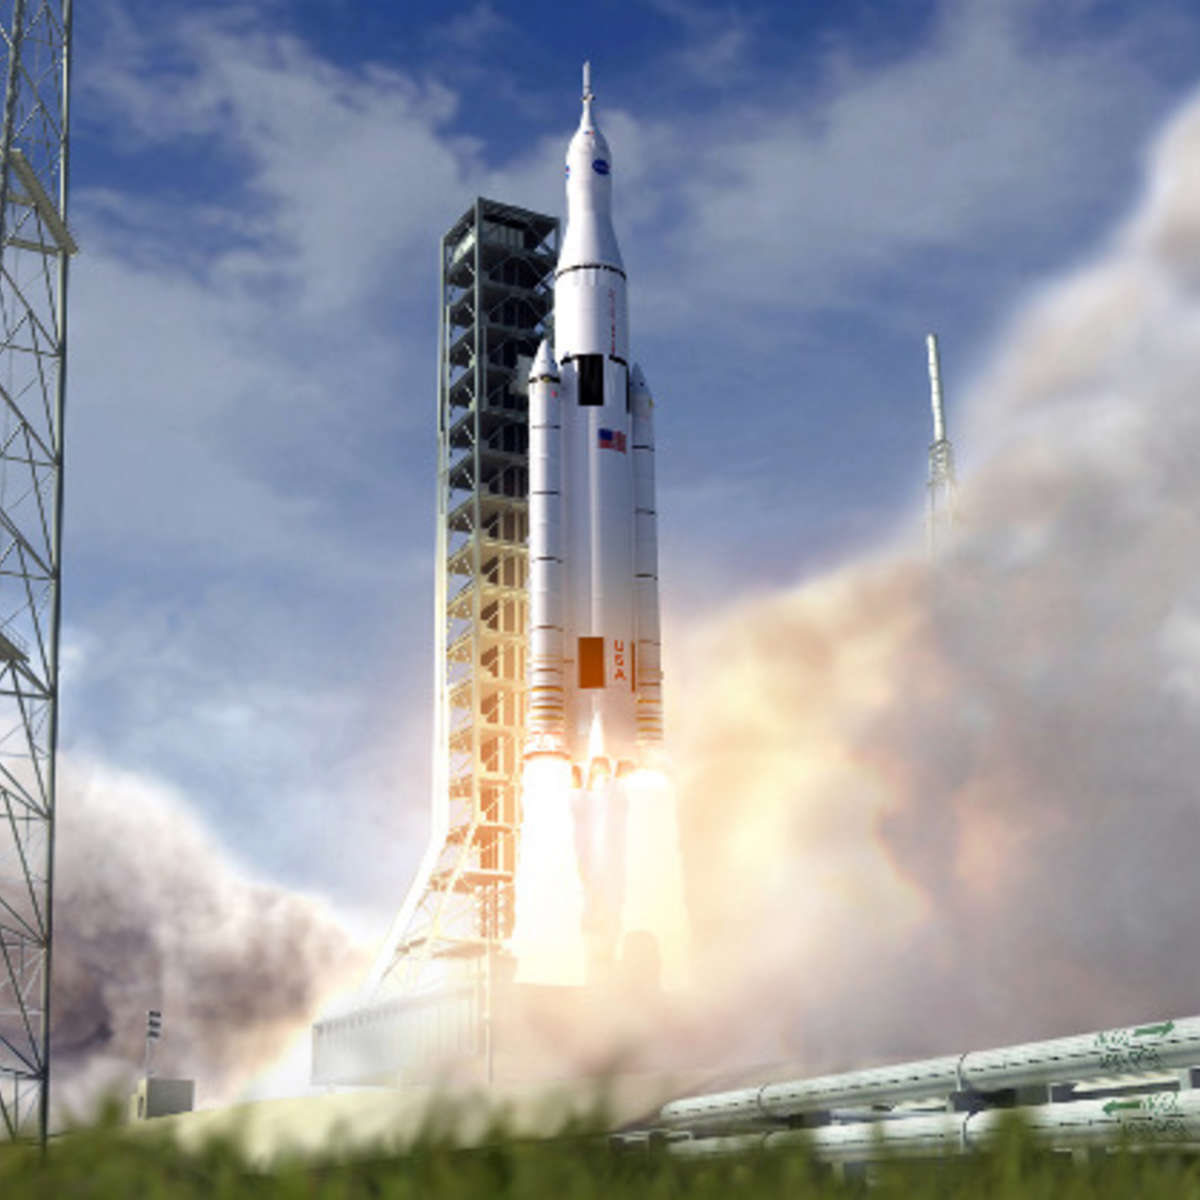 sls_launch_art_0.jpg